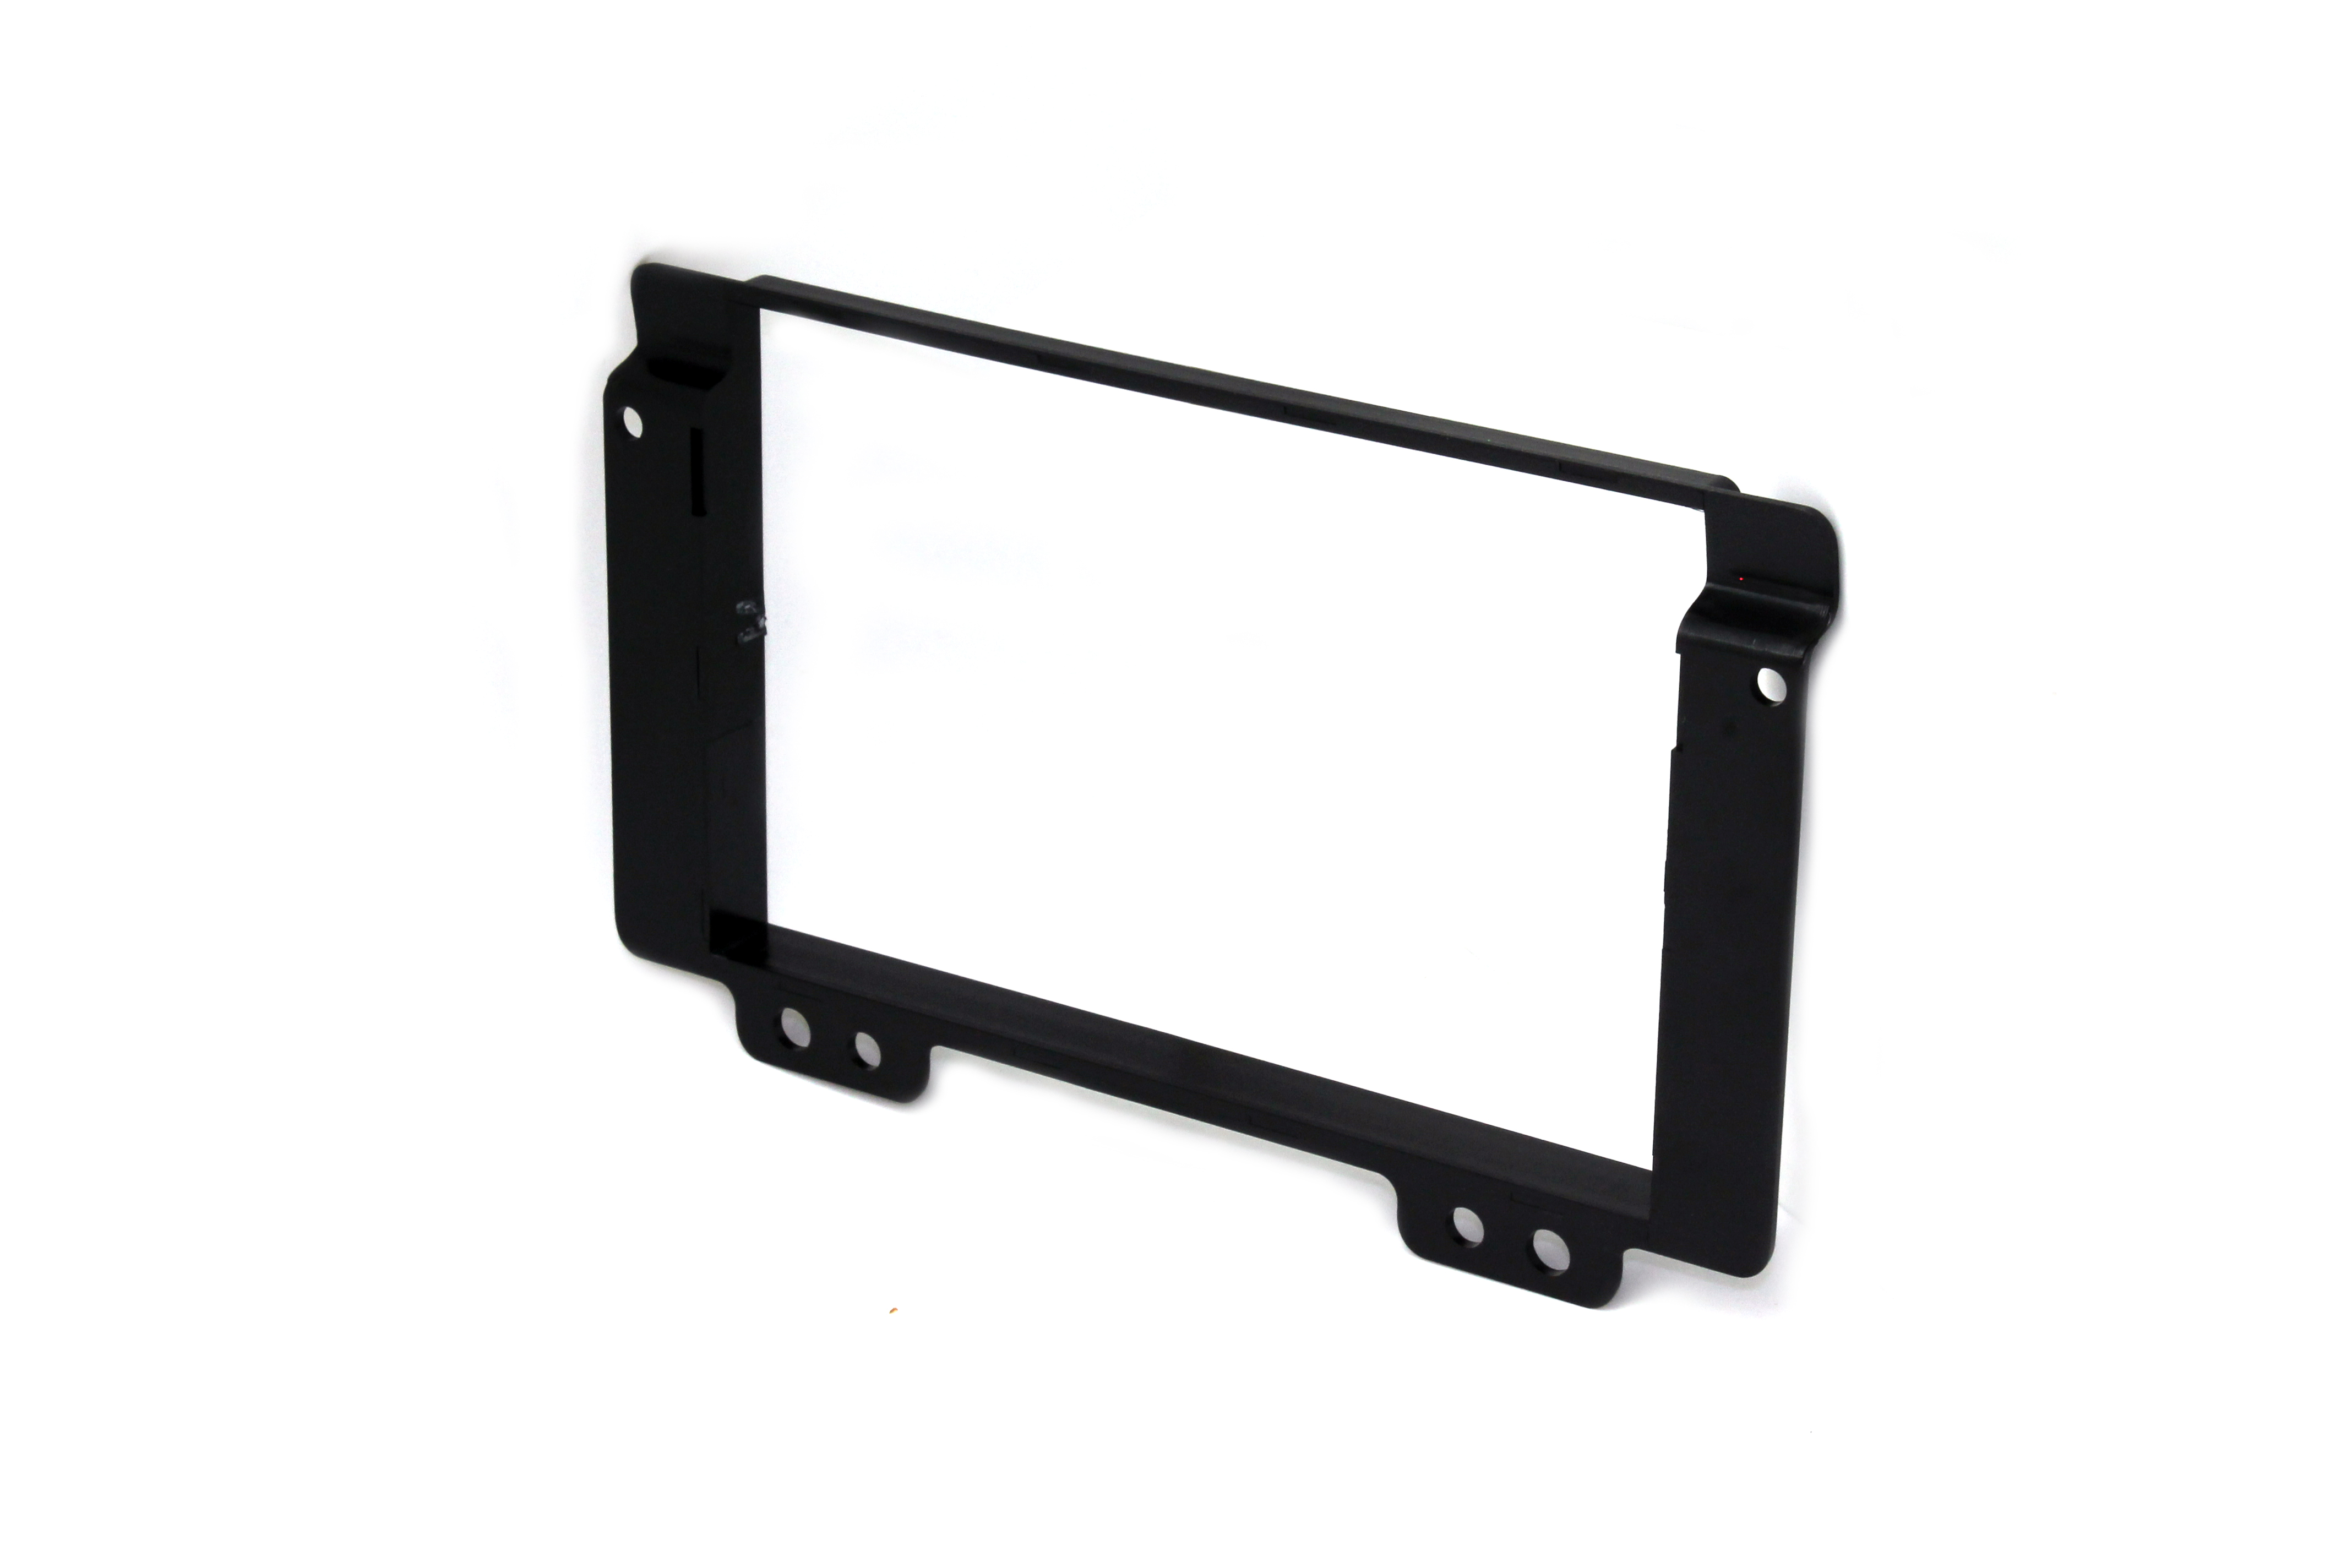 C2 24LR03 Double Din Car Stereo Fascia Adaptor Plate For Land Rover Freelander